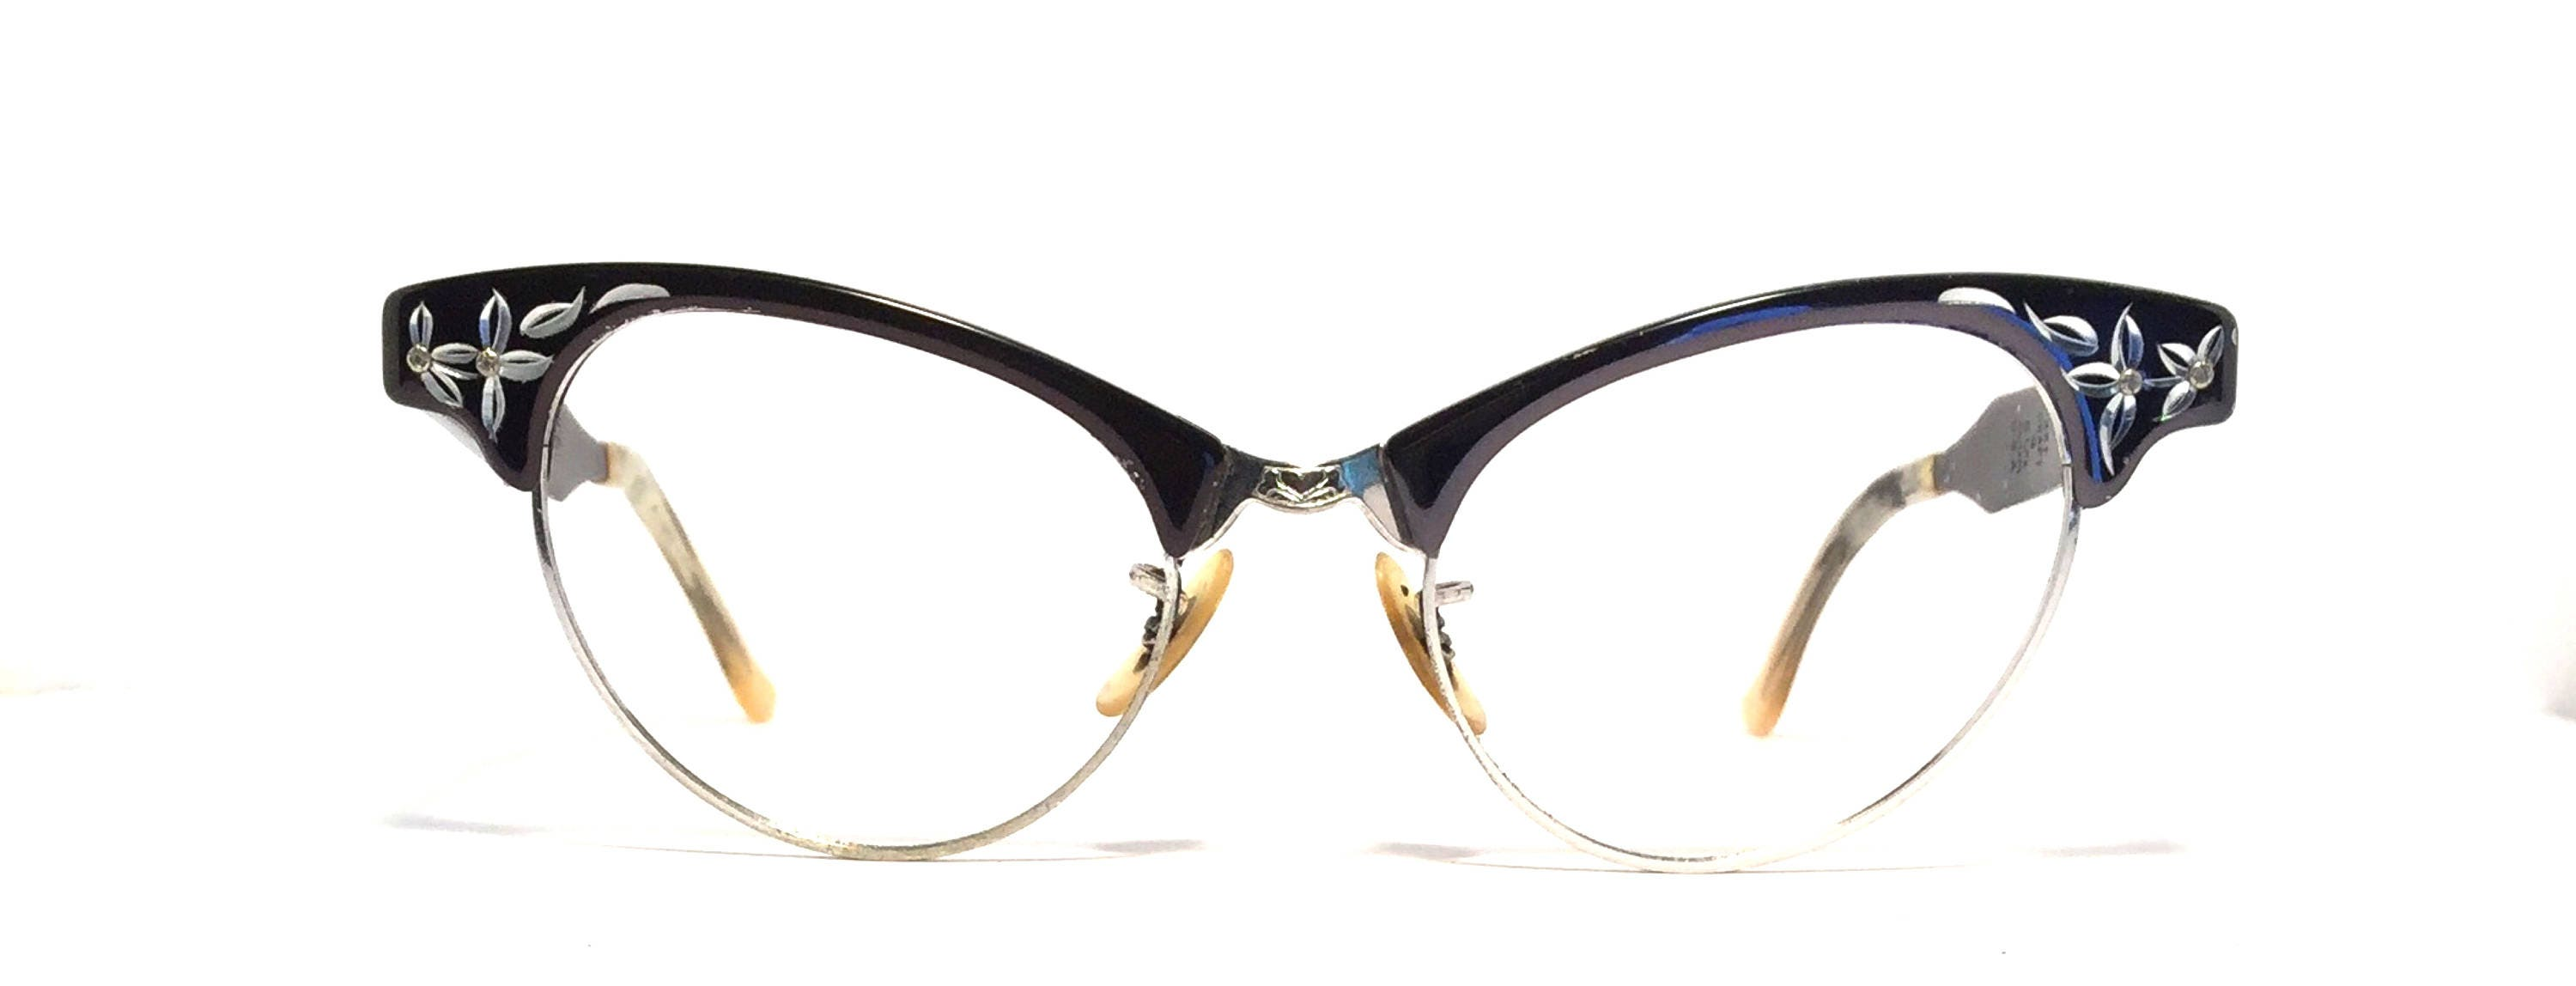 15a7f4124c Vintage eyewear. Cat eye style. Black aluminum silver detailing. Made in  USA by